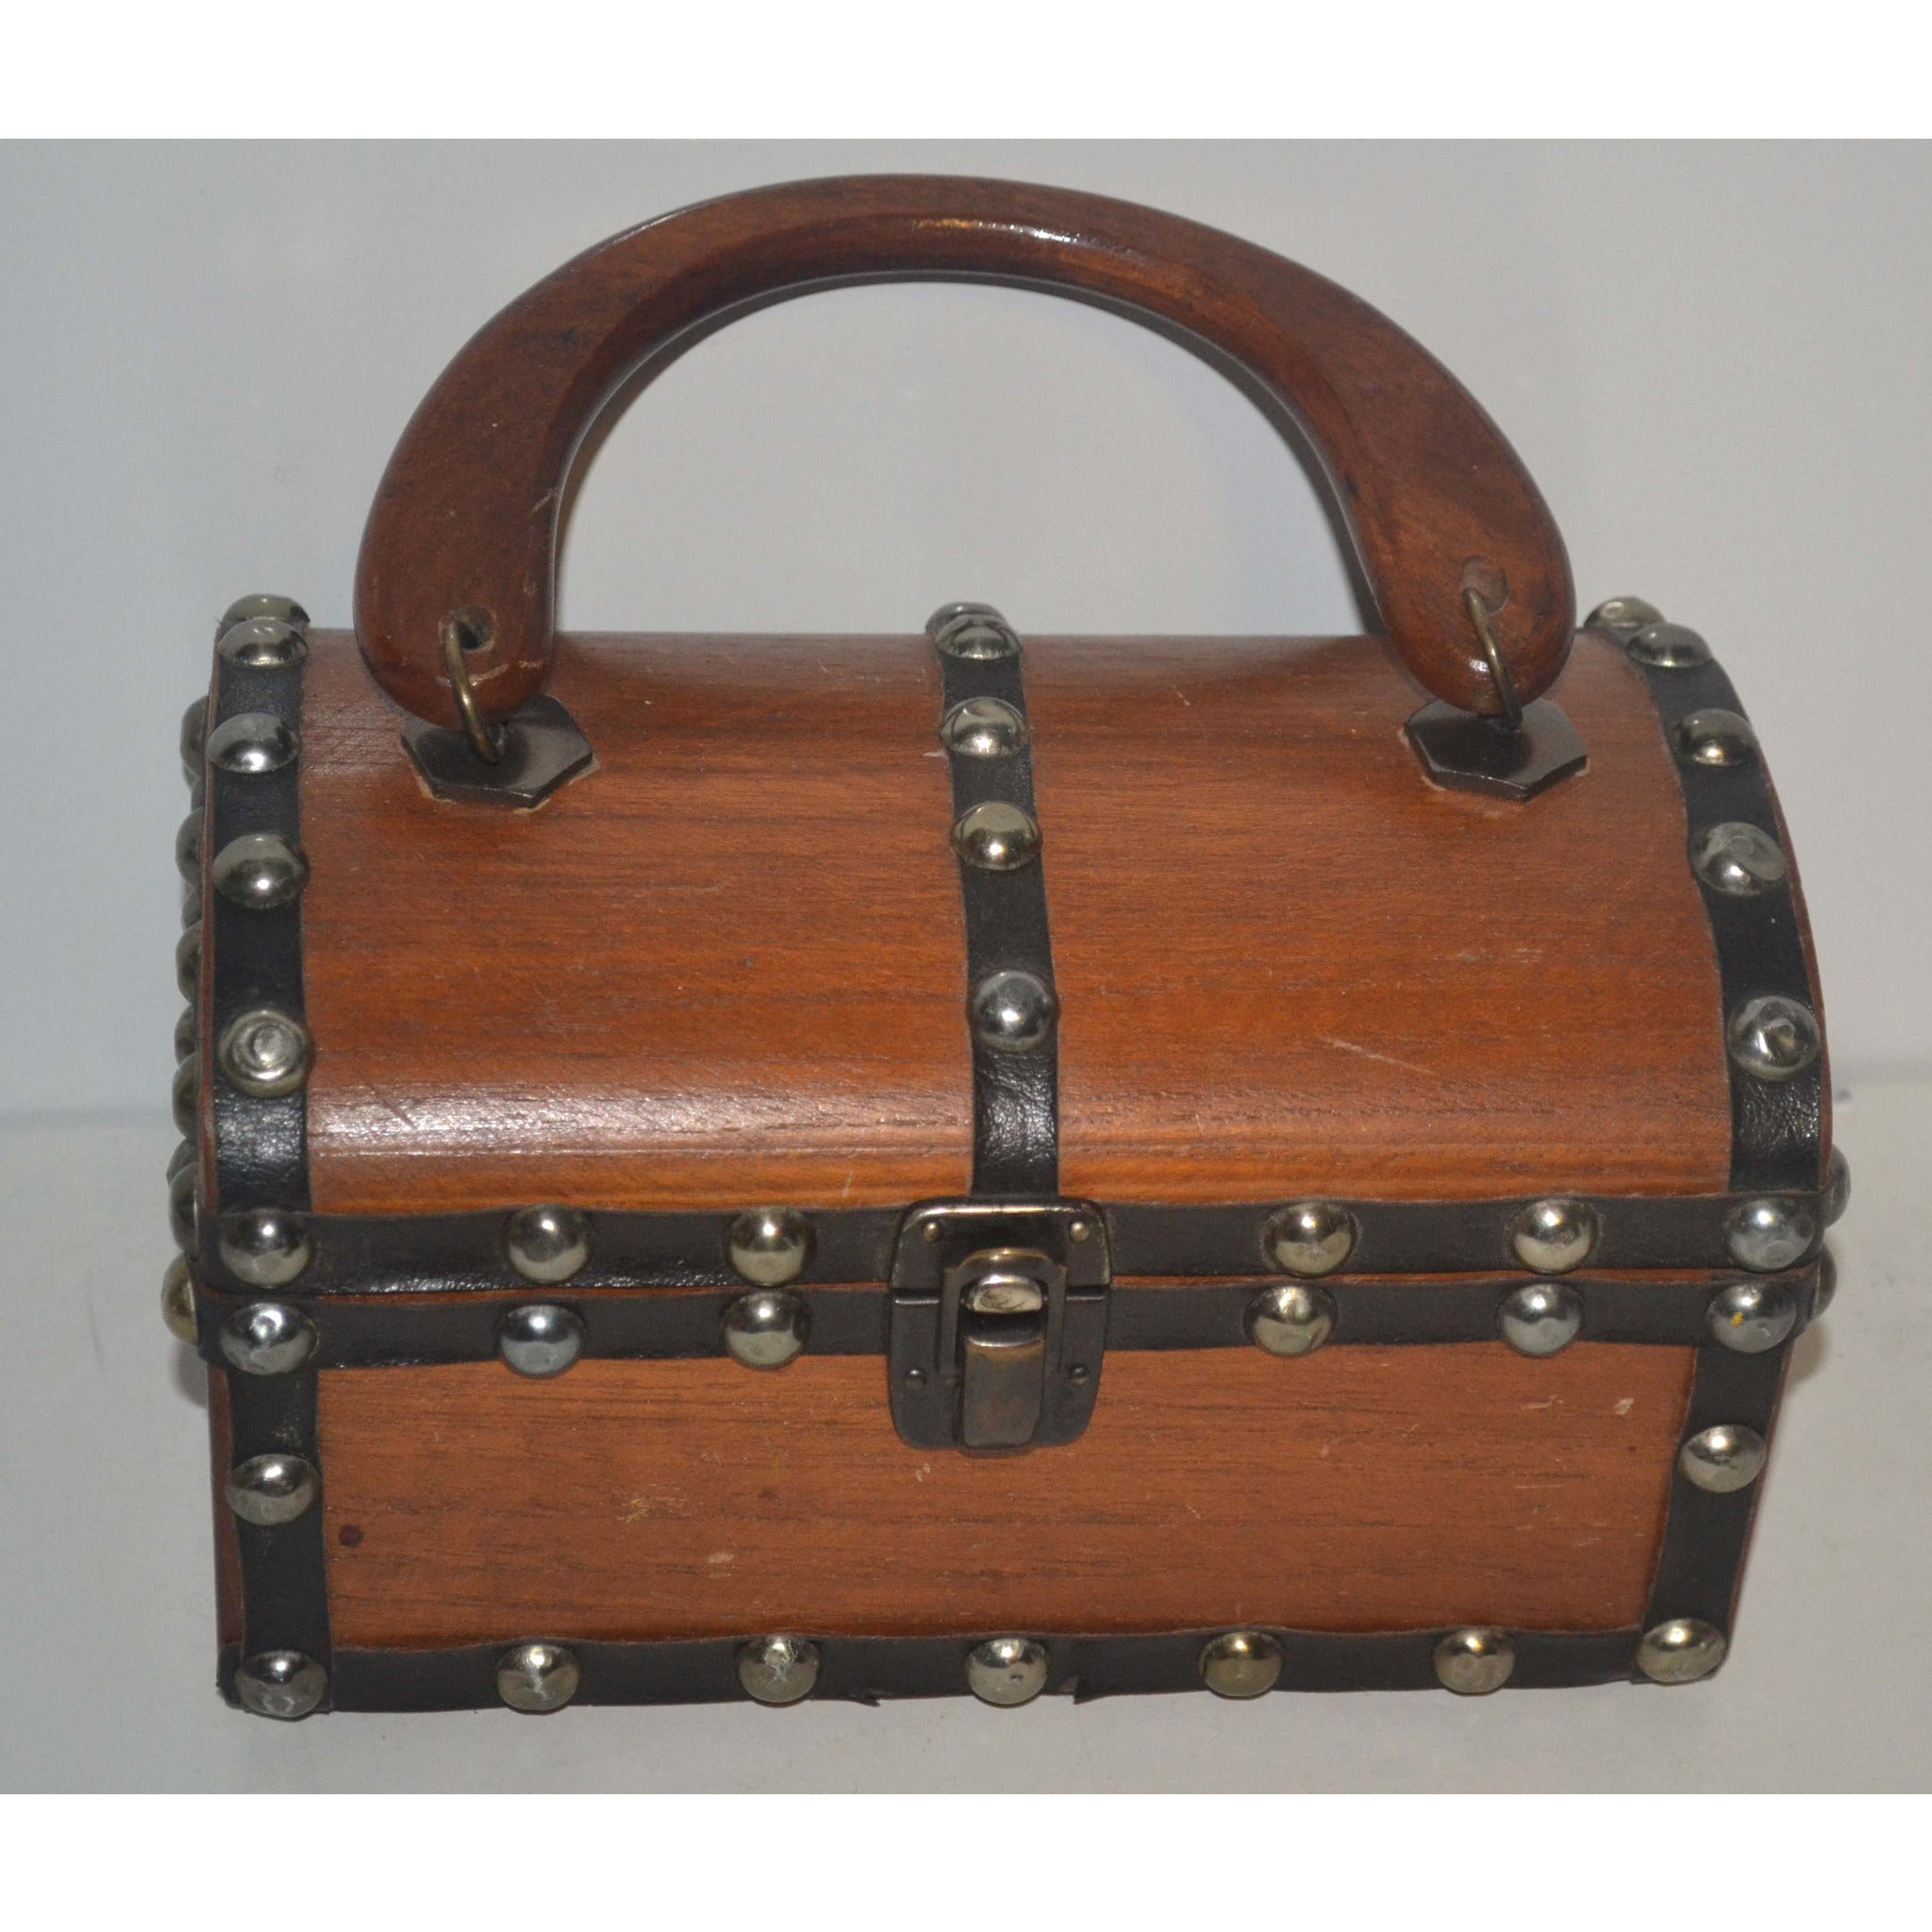 Vintage Brown Wooden Treasure Chest Purse